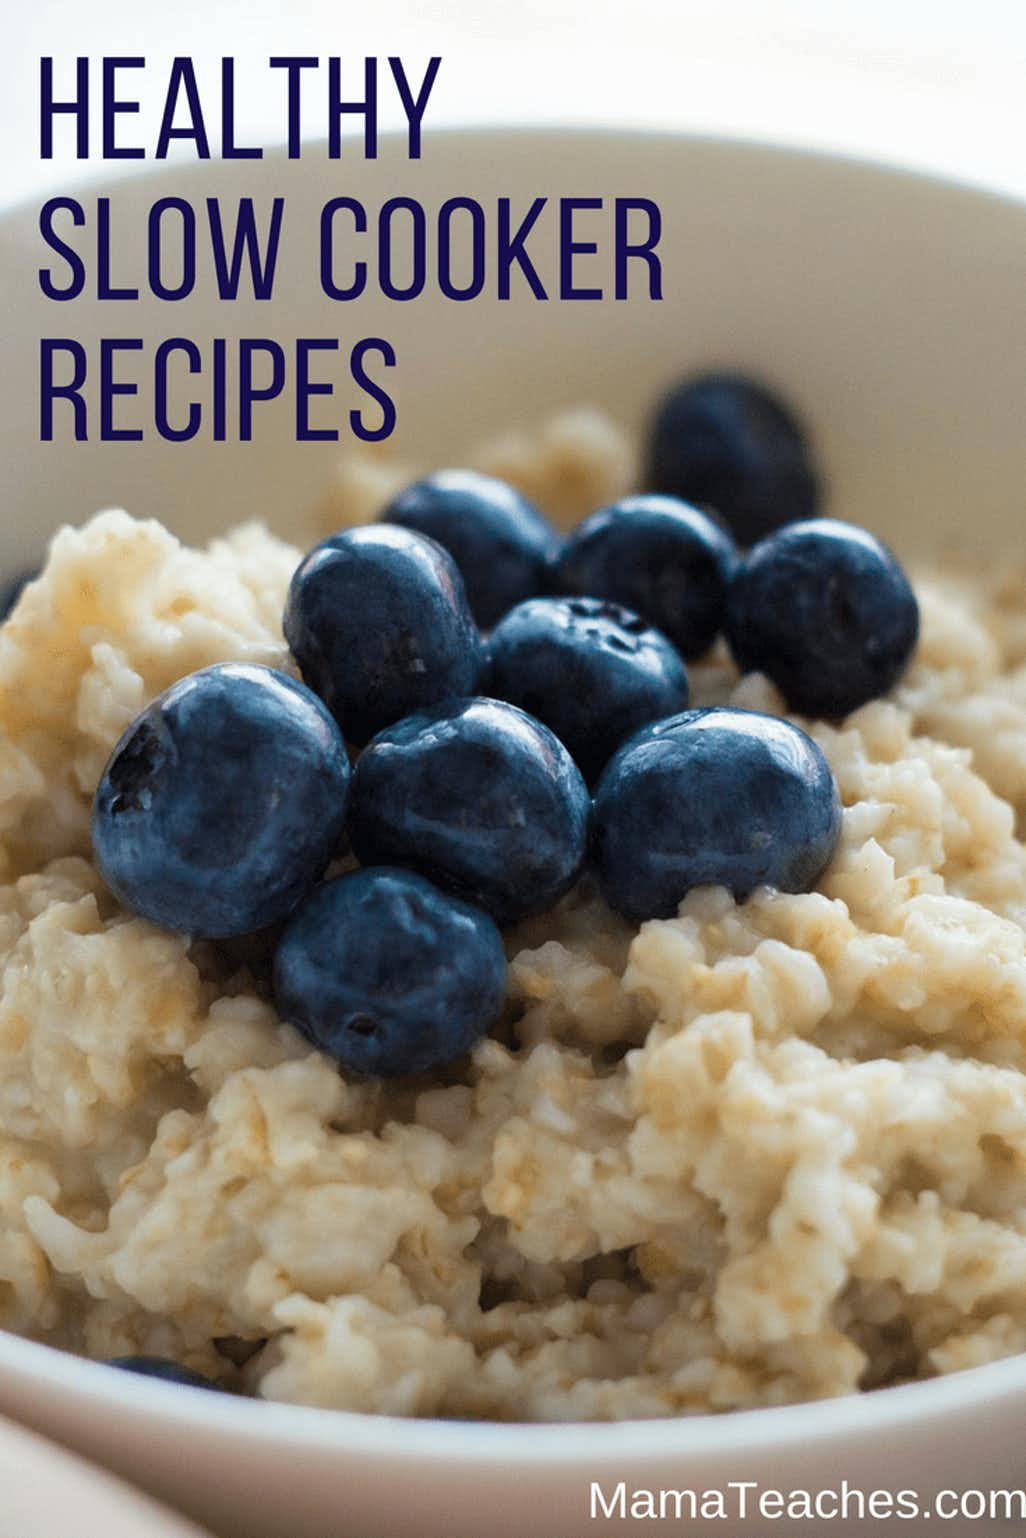 Healthy Slow Cooker Recipes You Have to Try